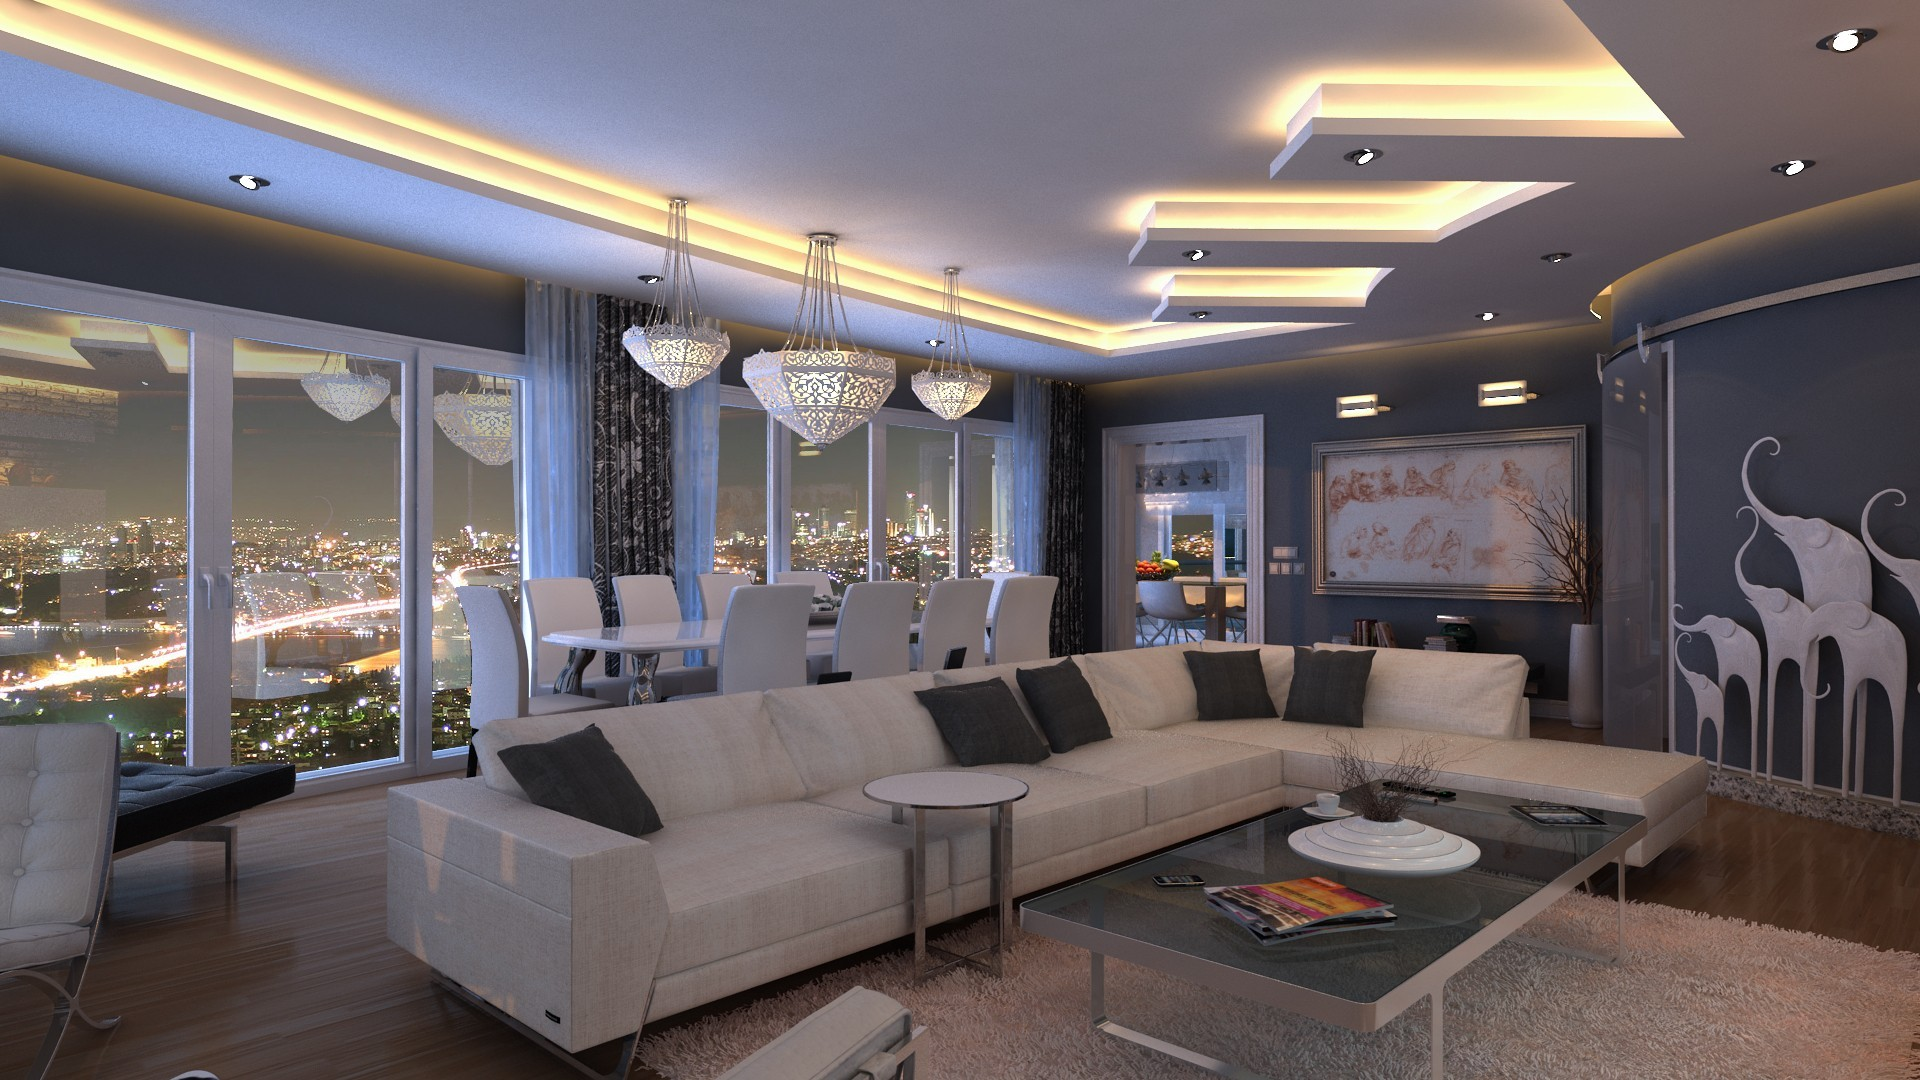 Wallpaper Cityscape Indoors Yacht Interior Design Living Rooms Lobby Home Condominium Mansion Property Real Estate Living Room 1920x1080 Pol45 186709 Hd Wallpapers Wallhere